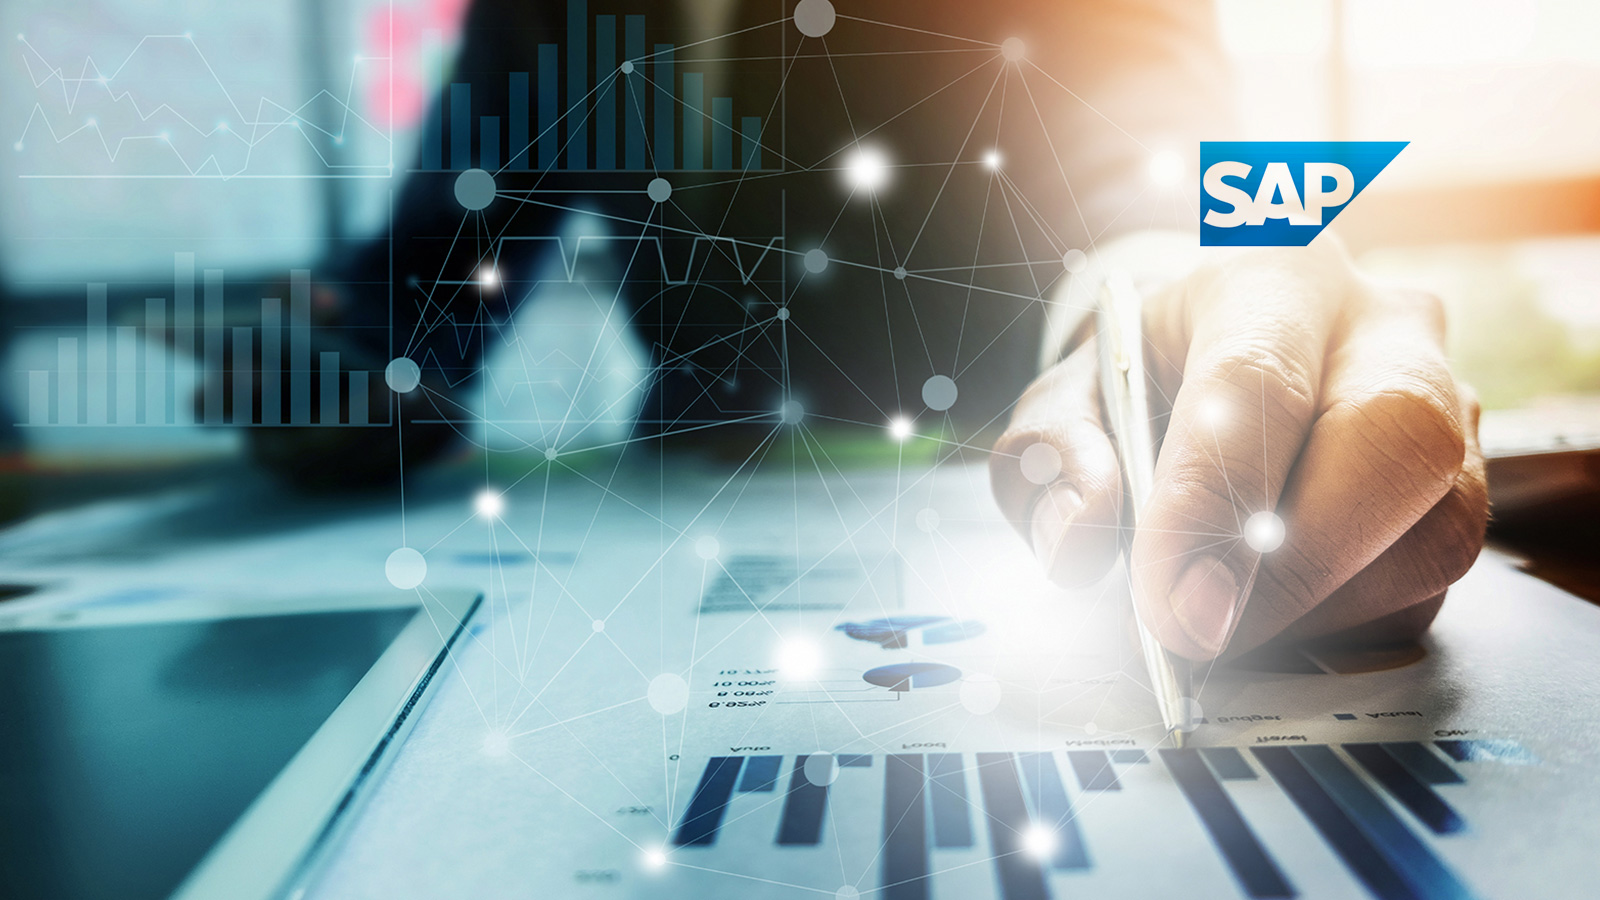 SAP Extends Its Leadership in AI Powered Intelligent ERP with S4HANA 1600x900